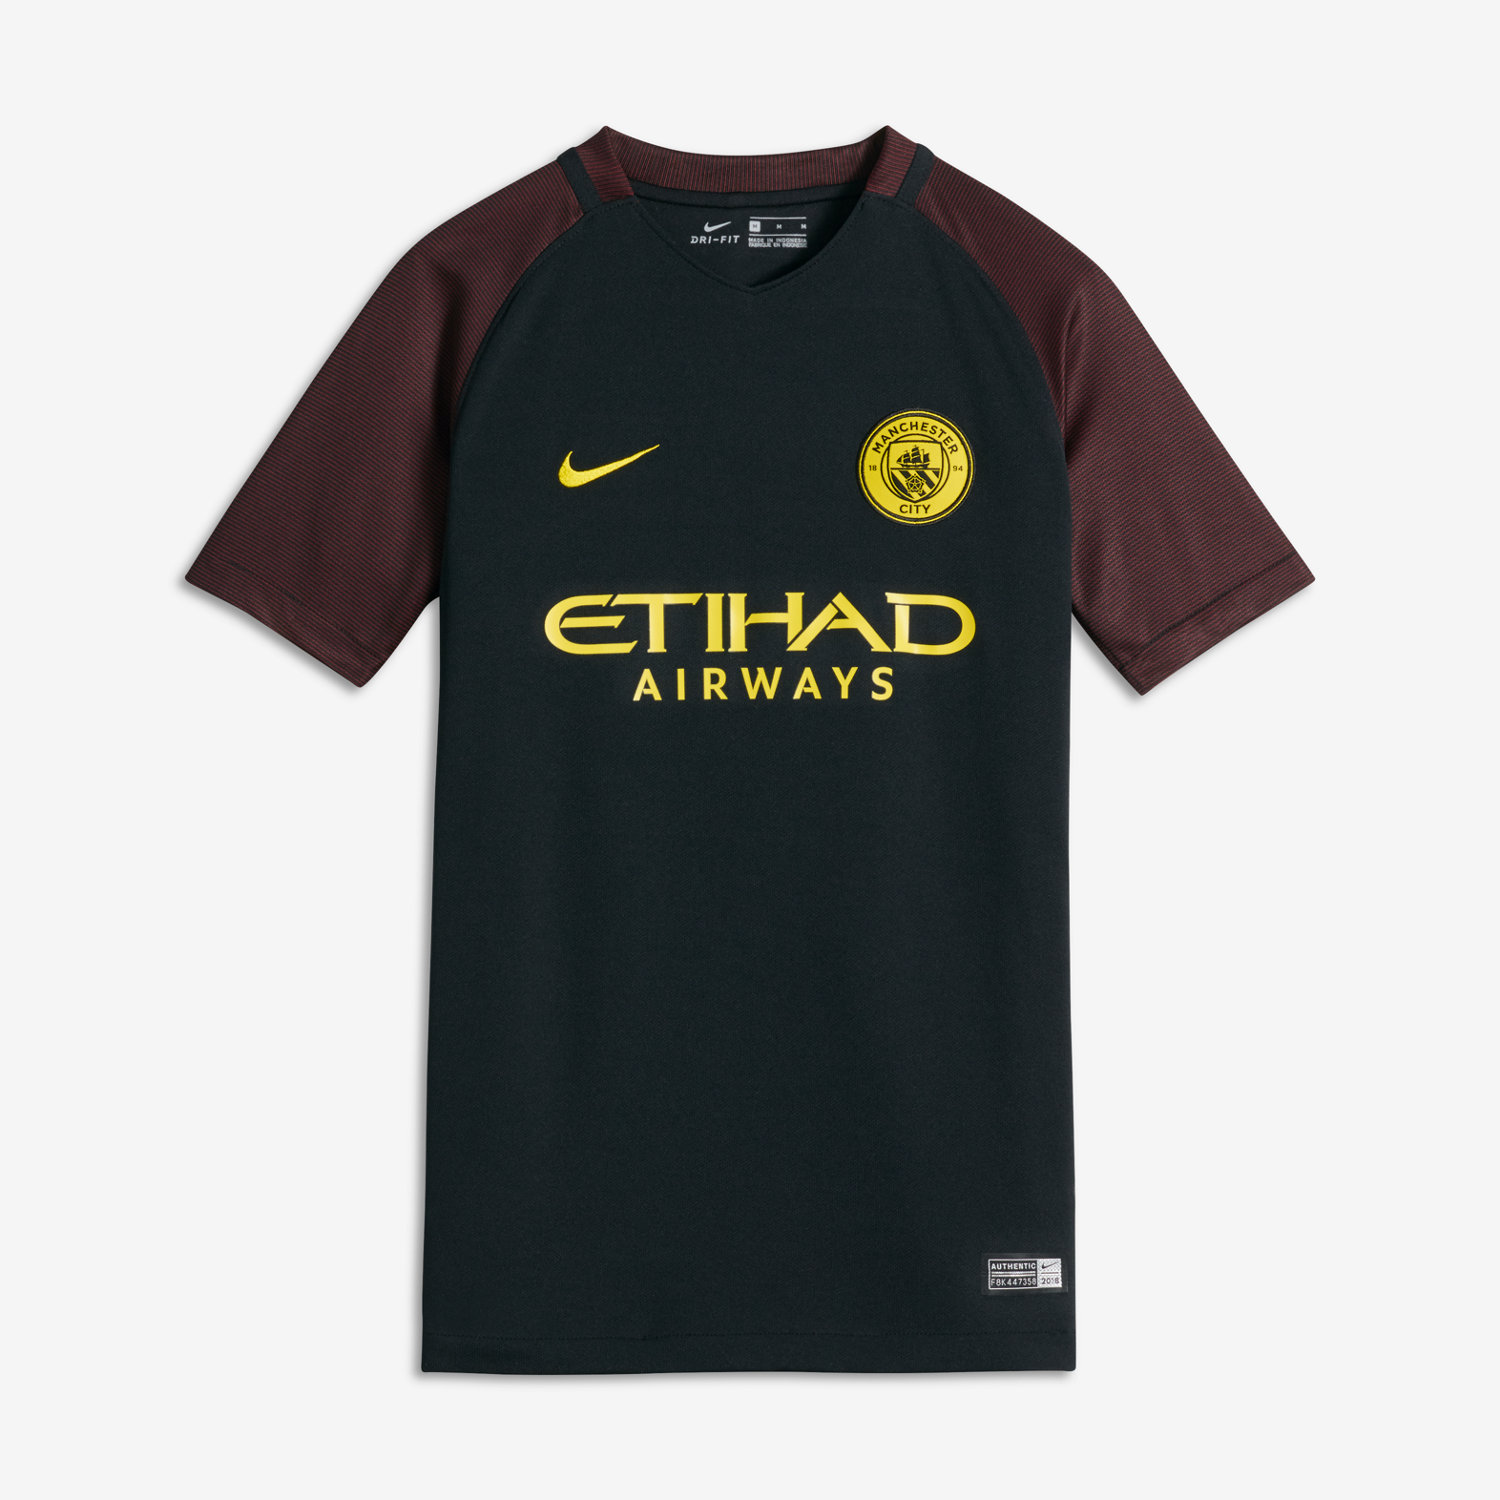 manchester city jersey for sale - techinternationalcorp.com dd8f06d9c00c